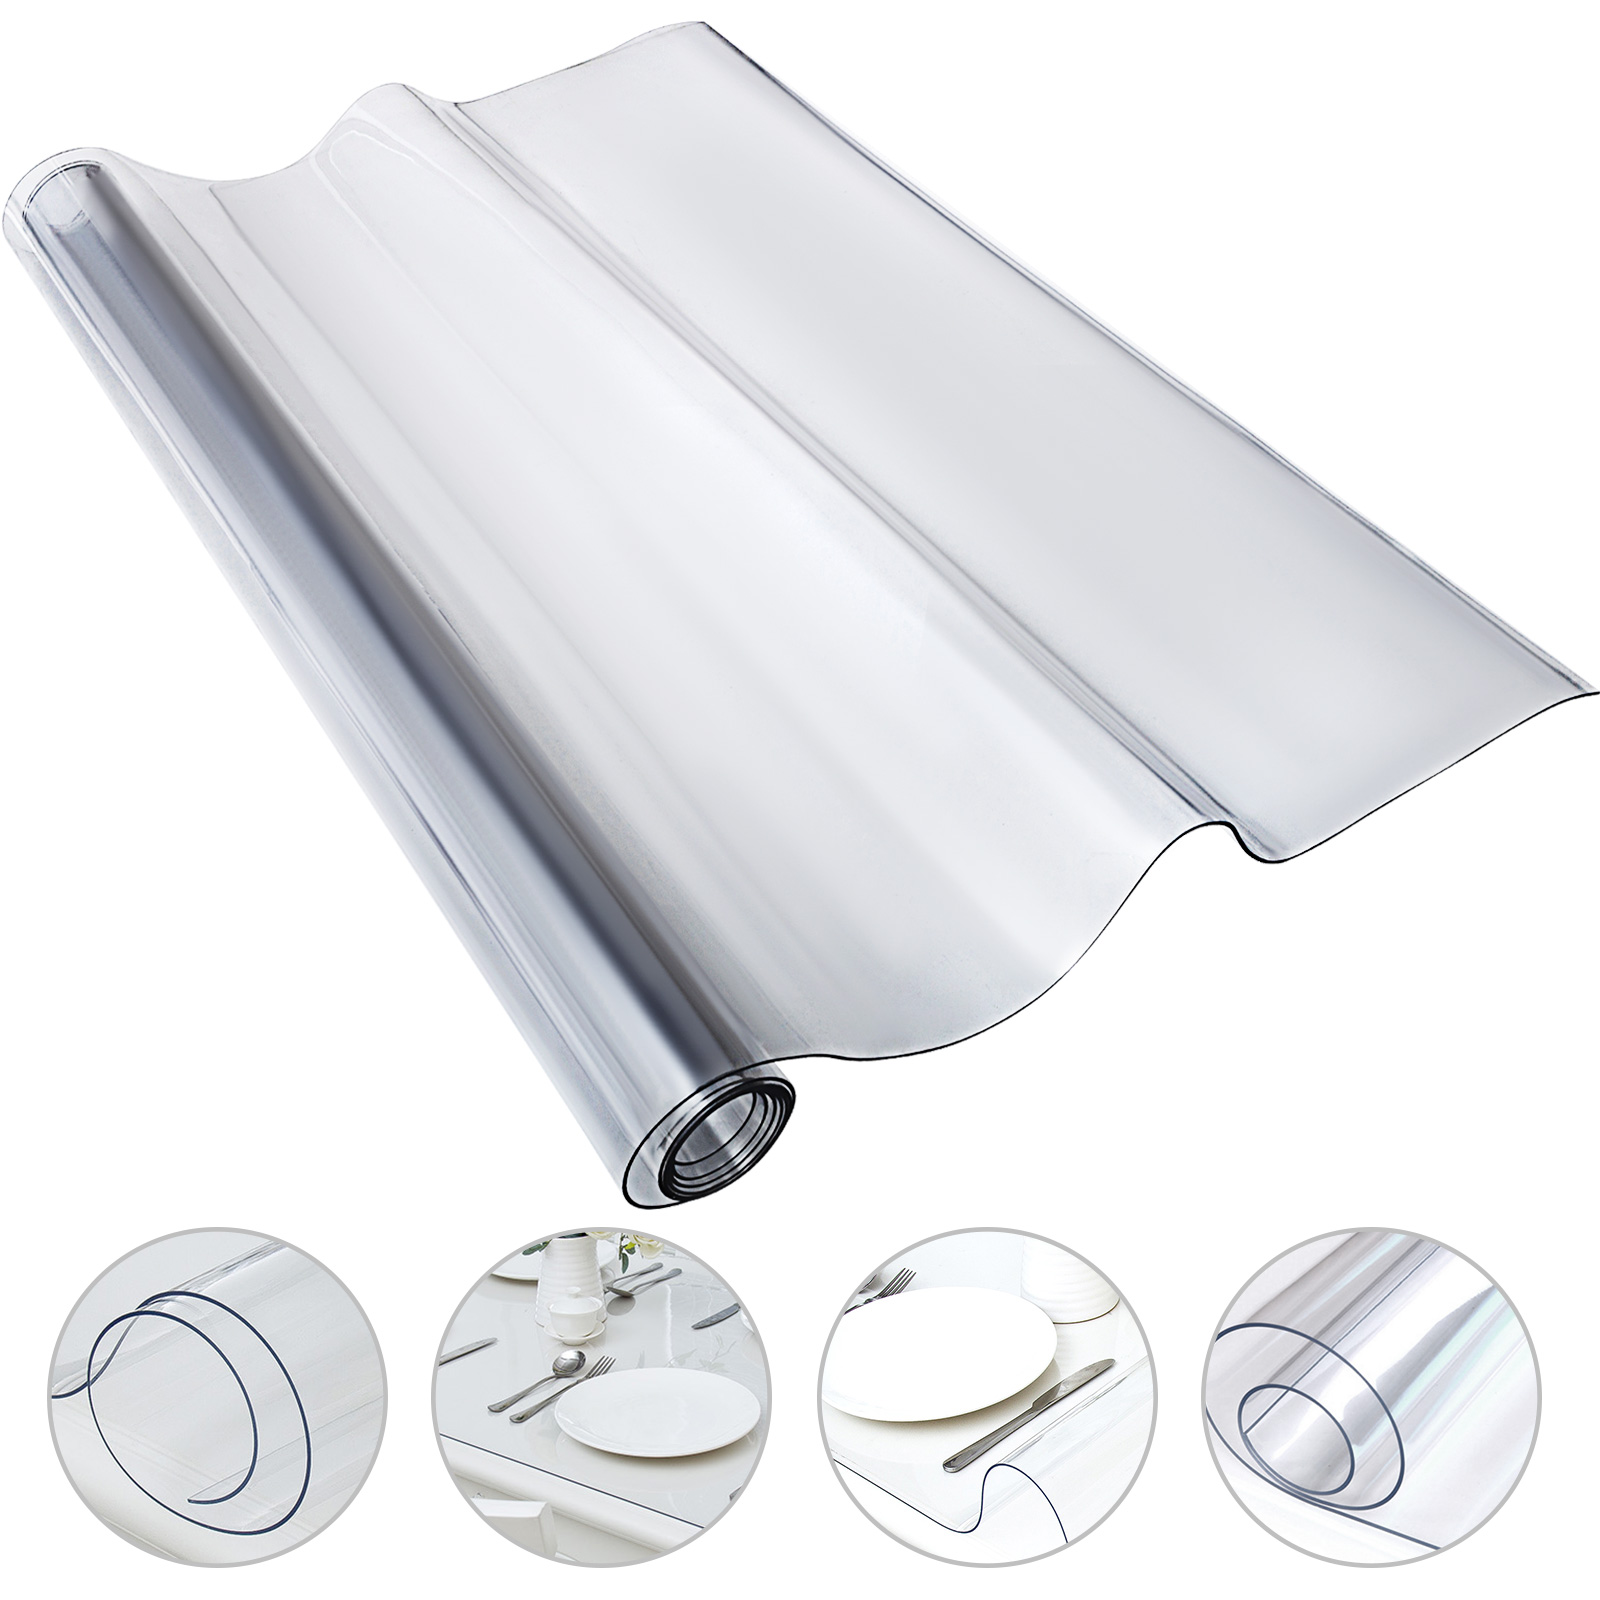 Waterproof Clear Plastic Pvc Tablecloth Transparent